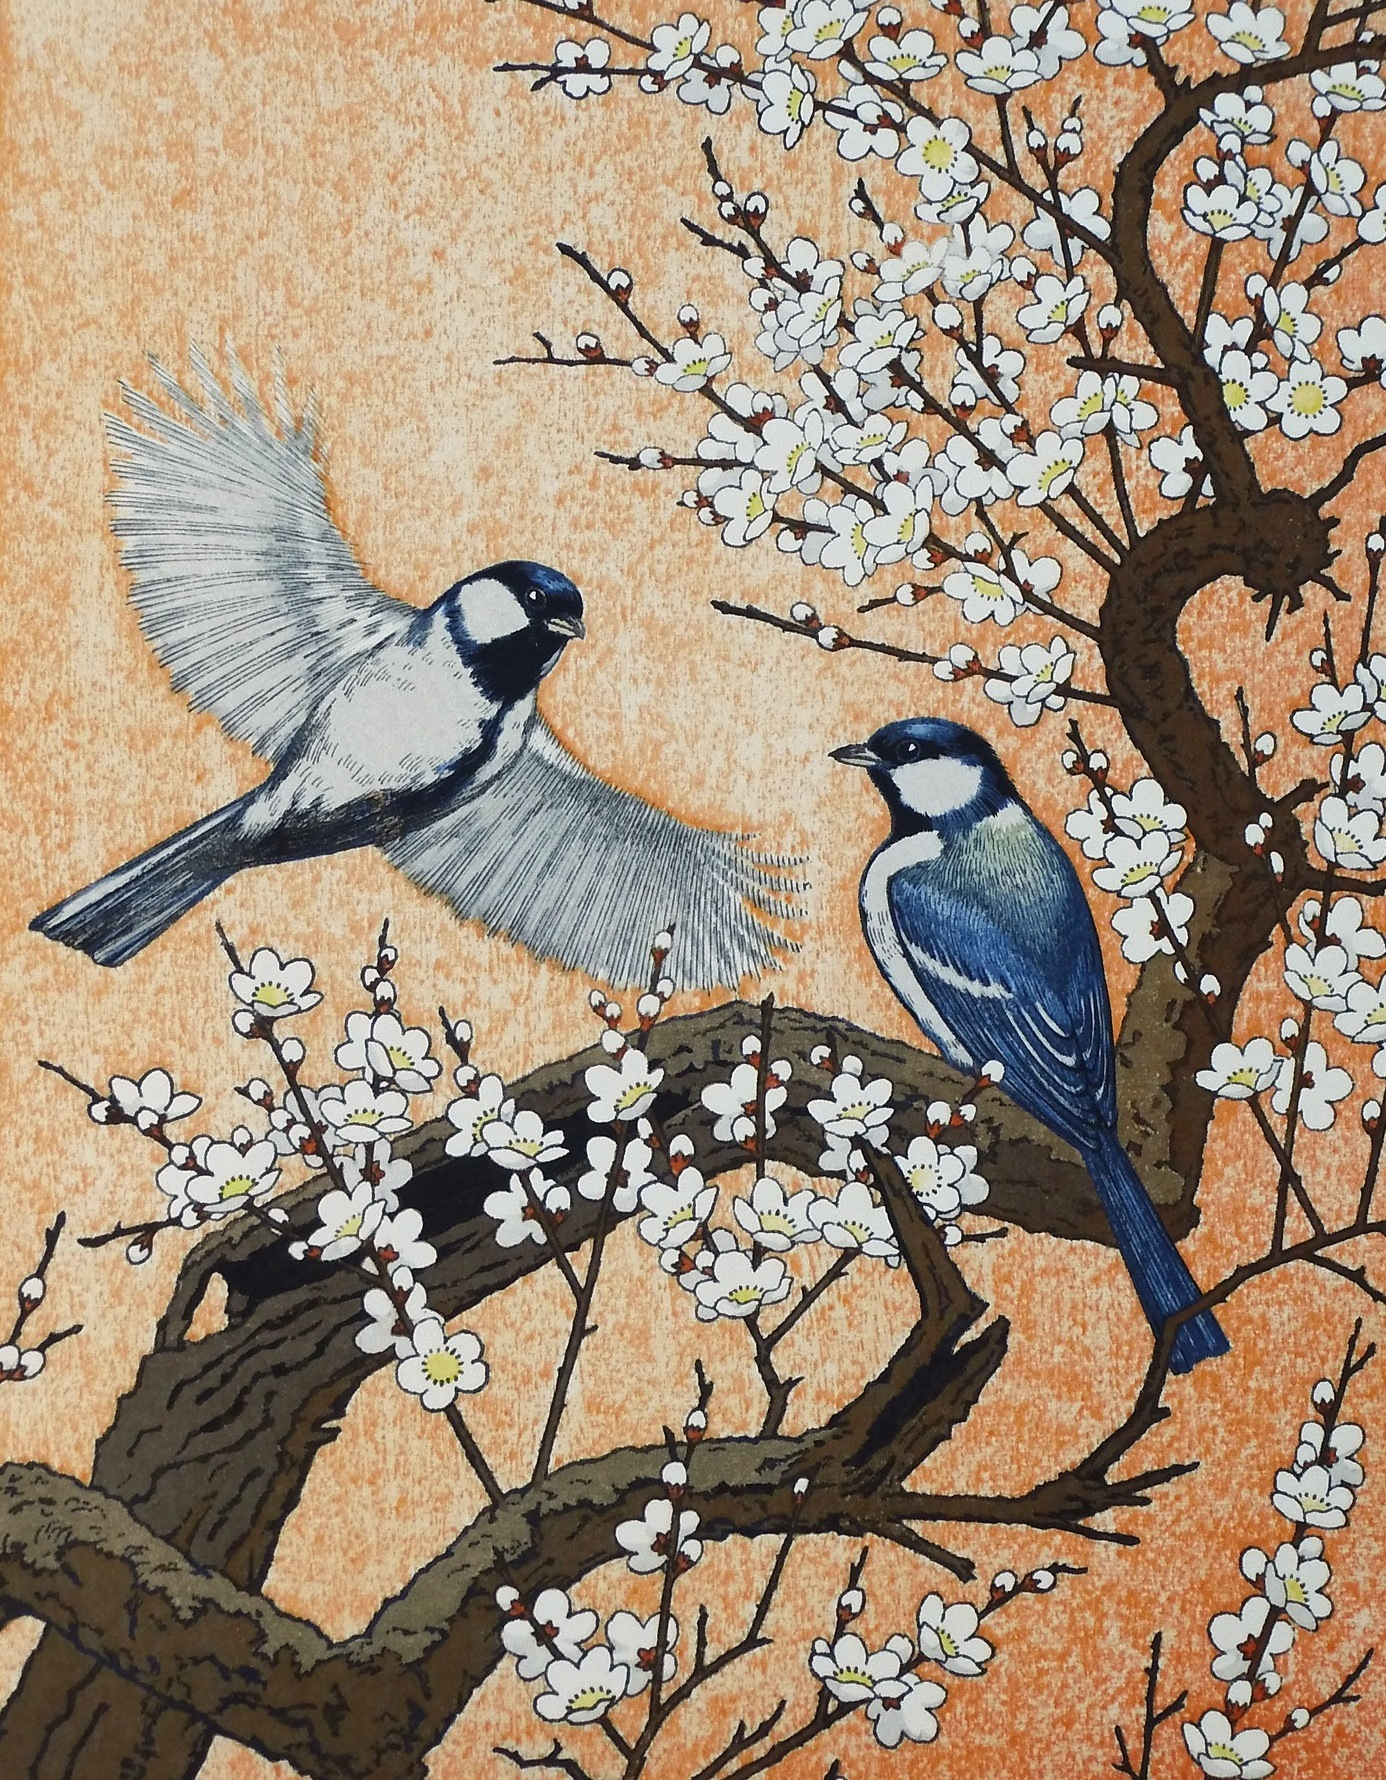 yoshida-toshi-spring-flying-around-the-plum-tree-1982